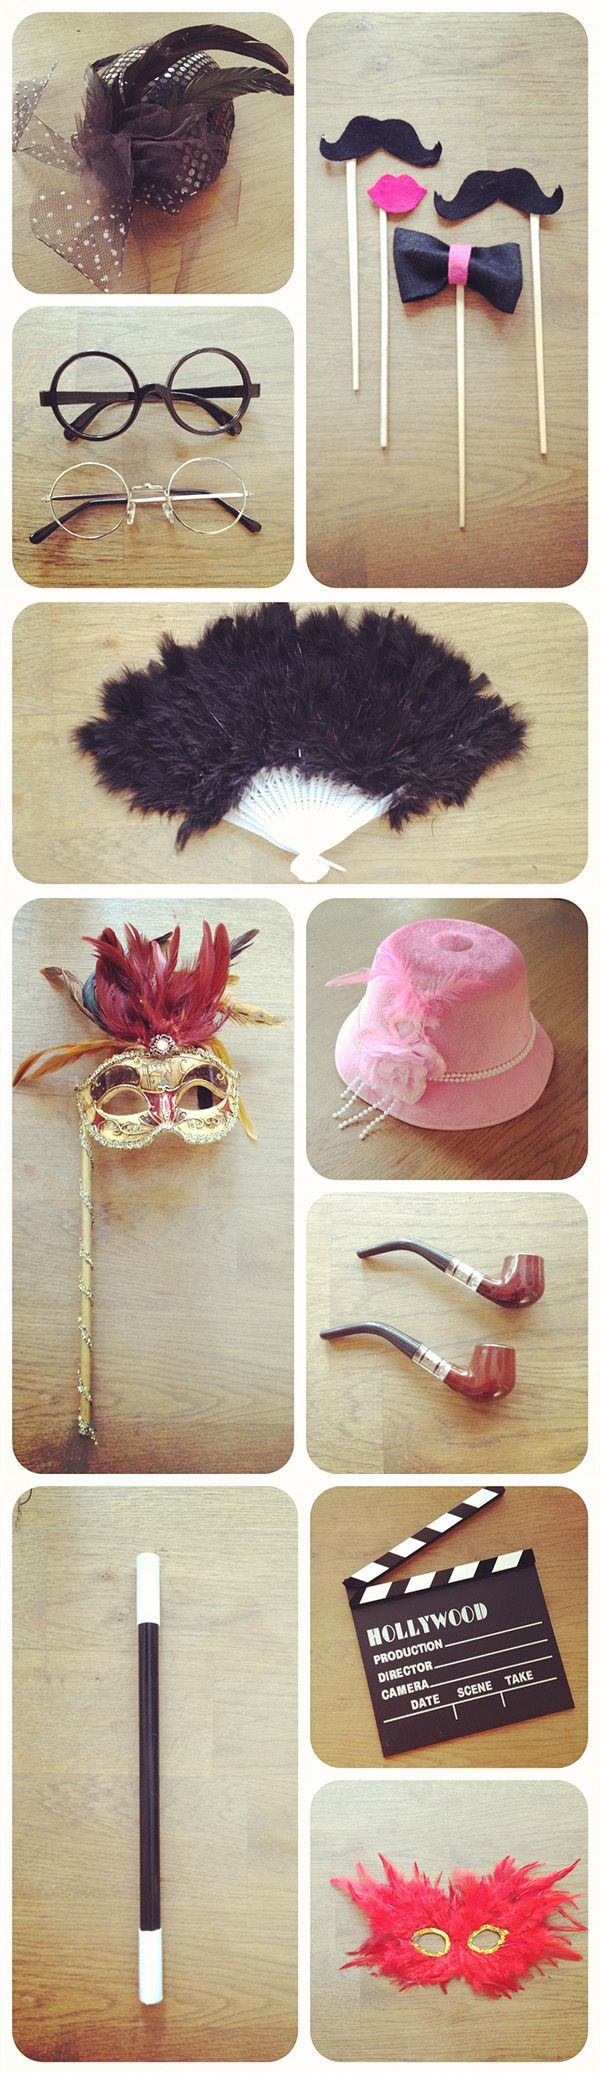 Vintage photobooth props package with mustaches, bow ties, masks, vintage hats etc